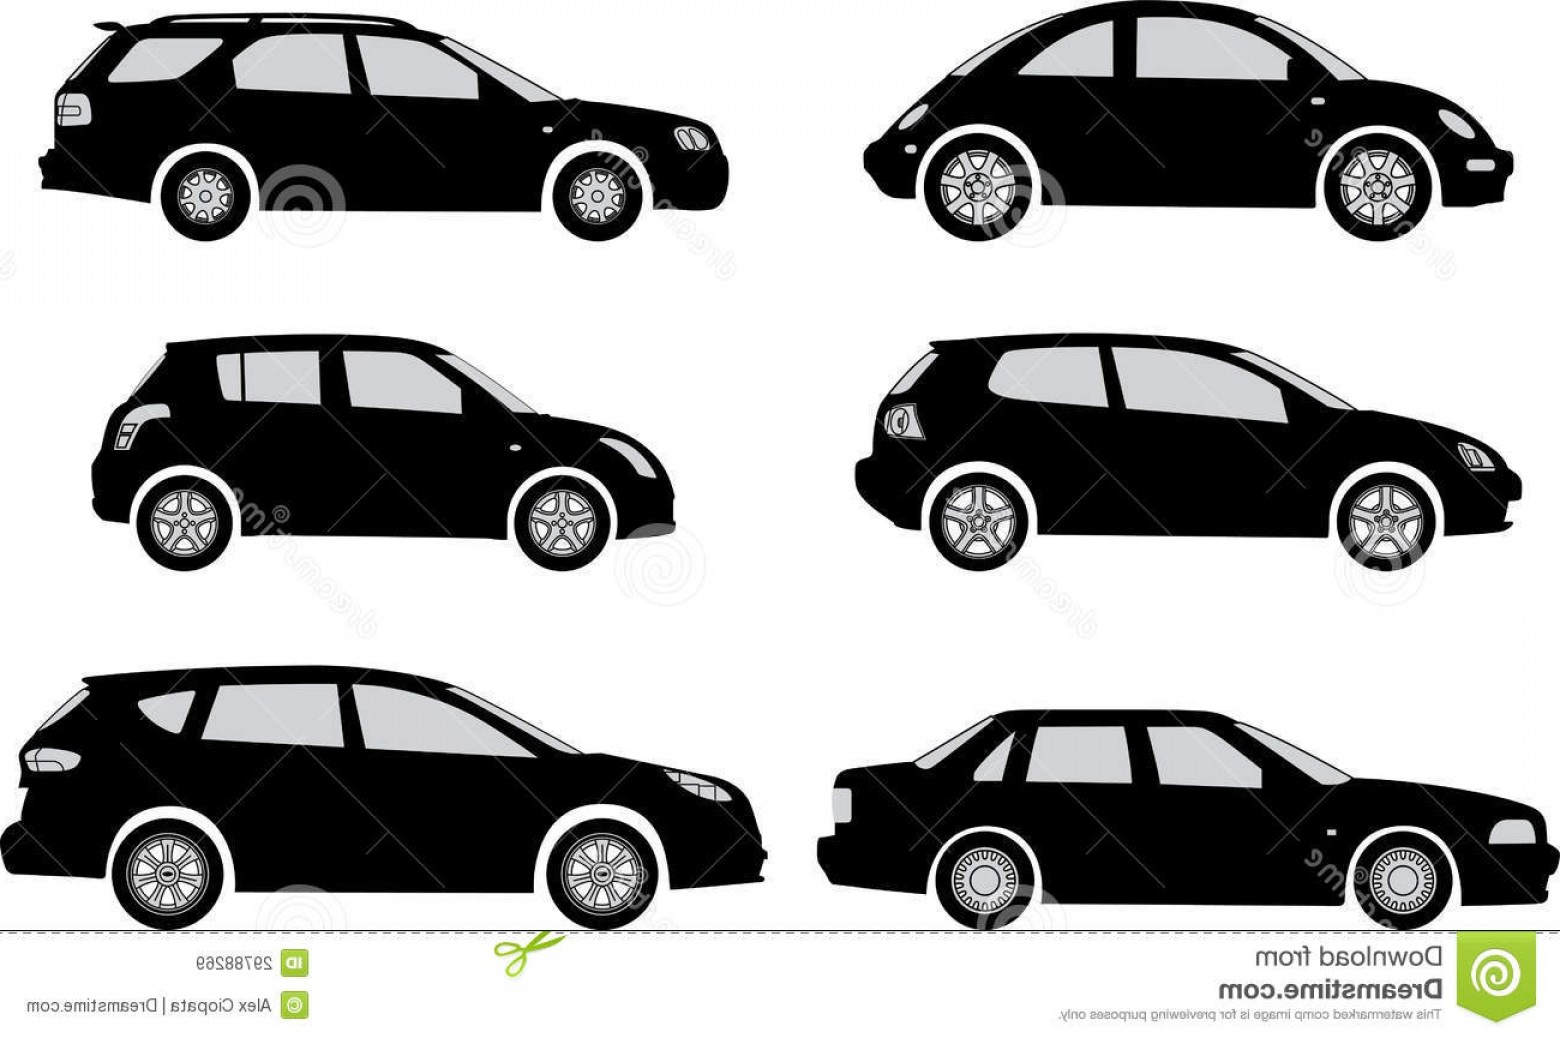 Car Silhouette Vector Free: Royalty Free Stock Images Silhouette Cars White Background Vector Illustration Image